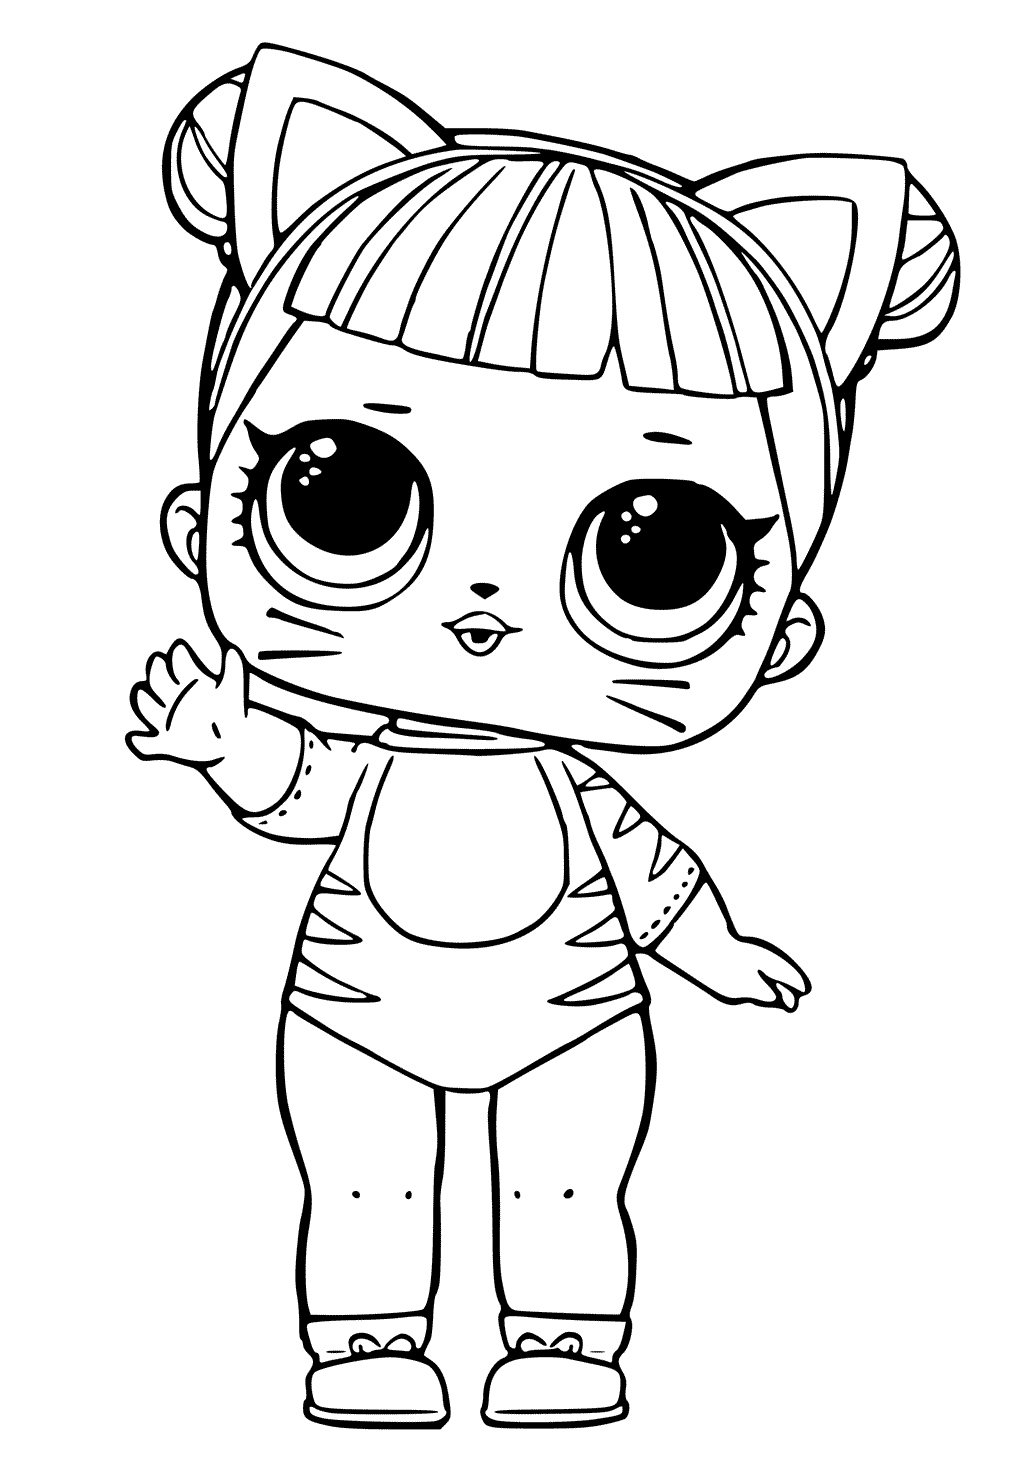 Bunny Lol Doll Coloring Pages   Coloring and Drawing